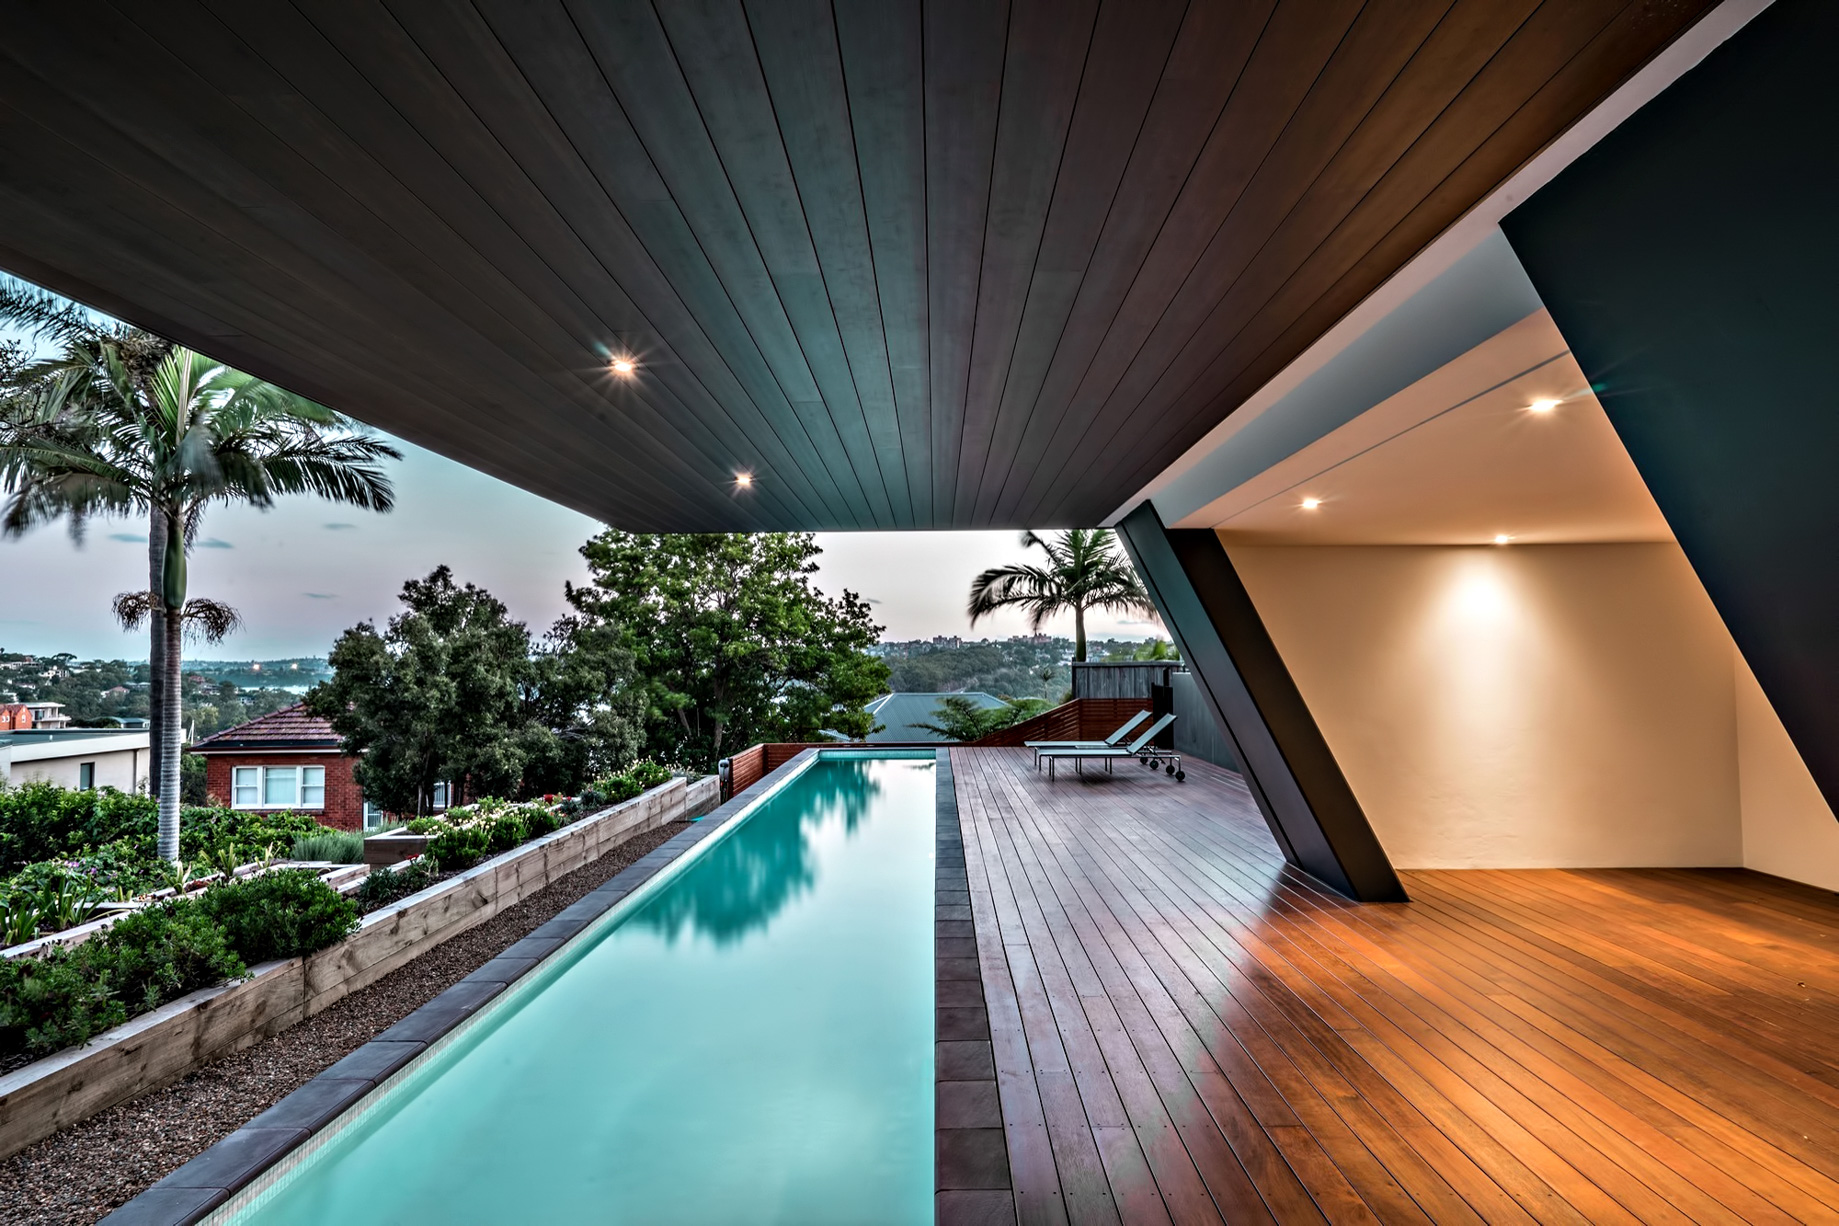 Seaforth House Residence - Sydney, New South Wales, Australia